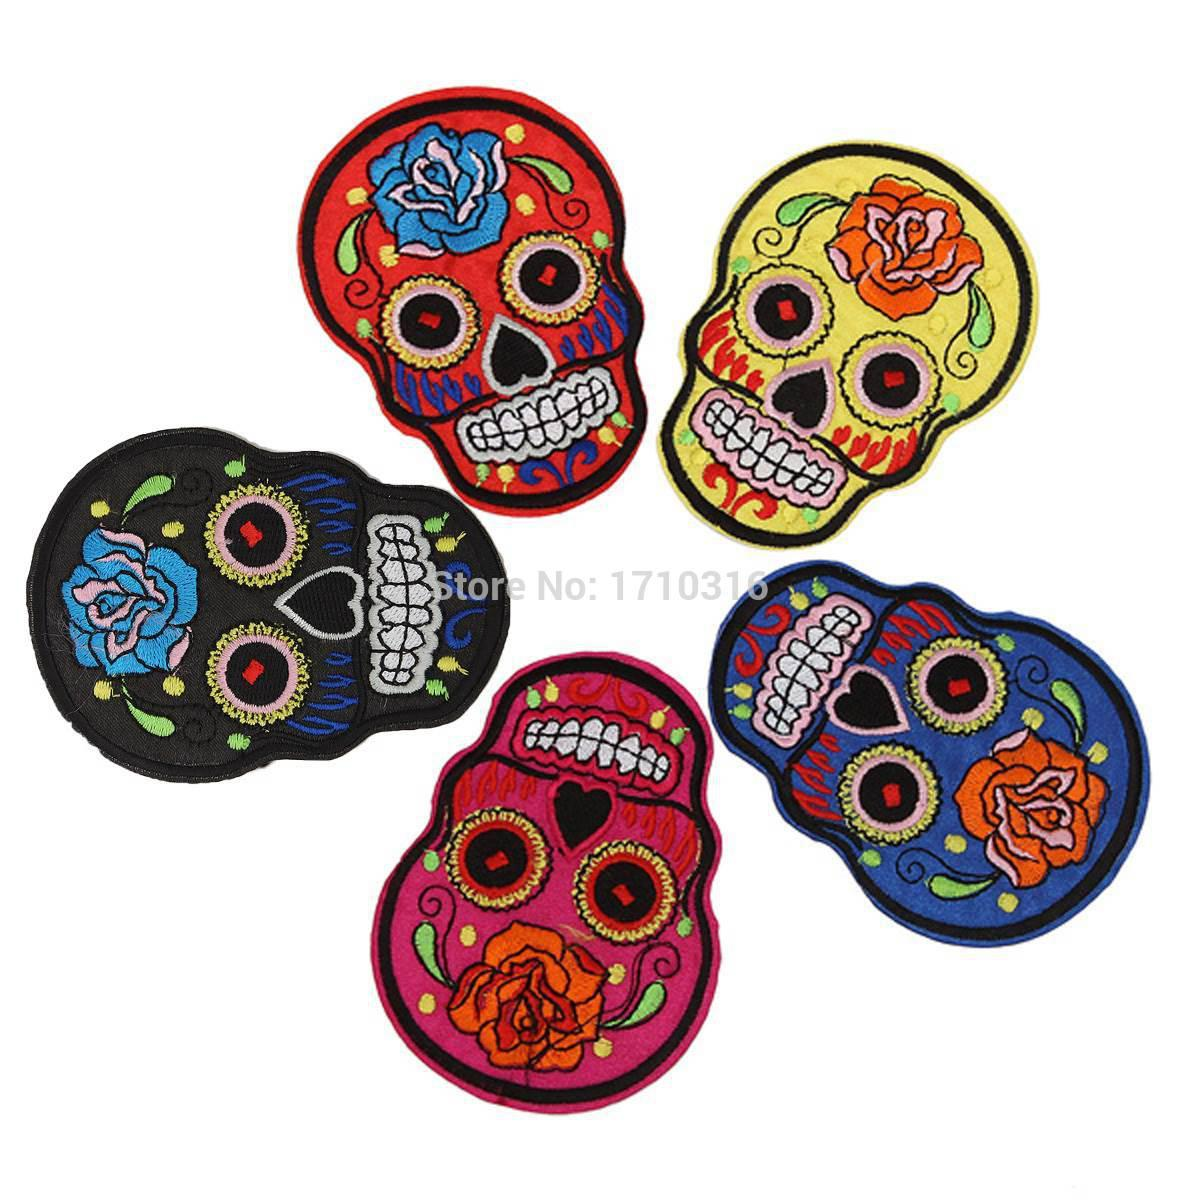 Wholesale-2015 Newest 7cmx10.5cm FLOWERED SKULLS Patches 5 COLOURS Embroidered Iron On Patch Goth punk Rockabilly Skeleton psychedelic